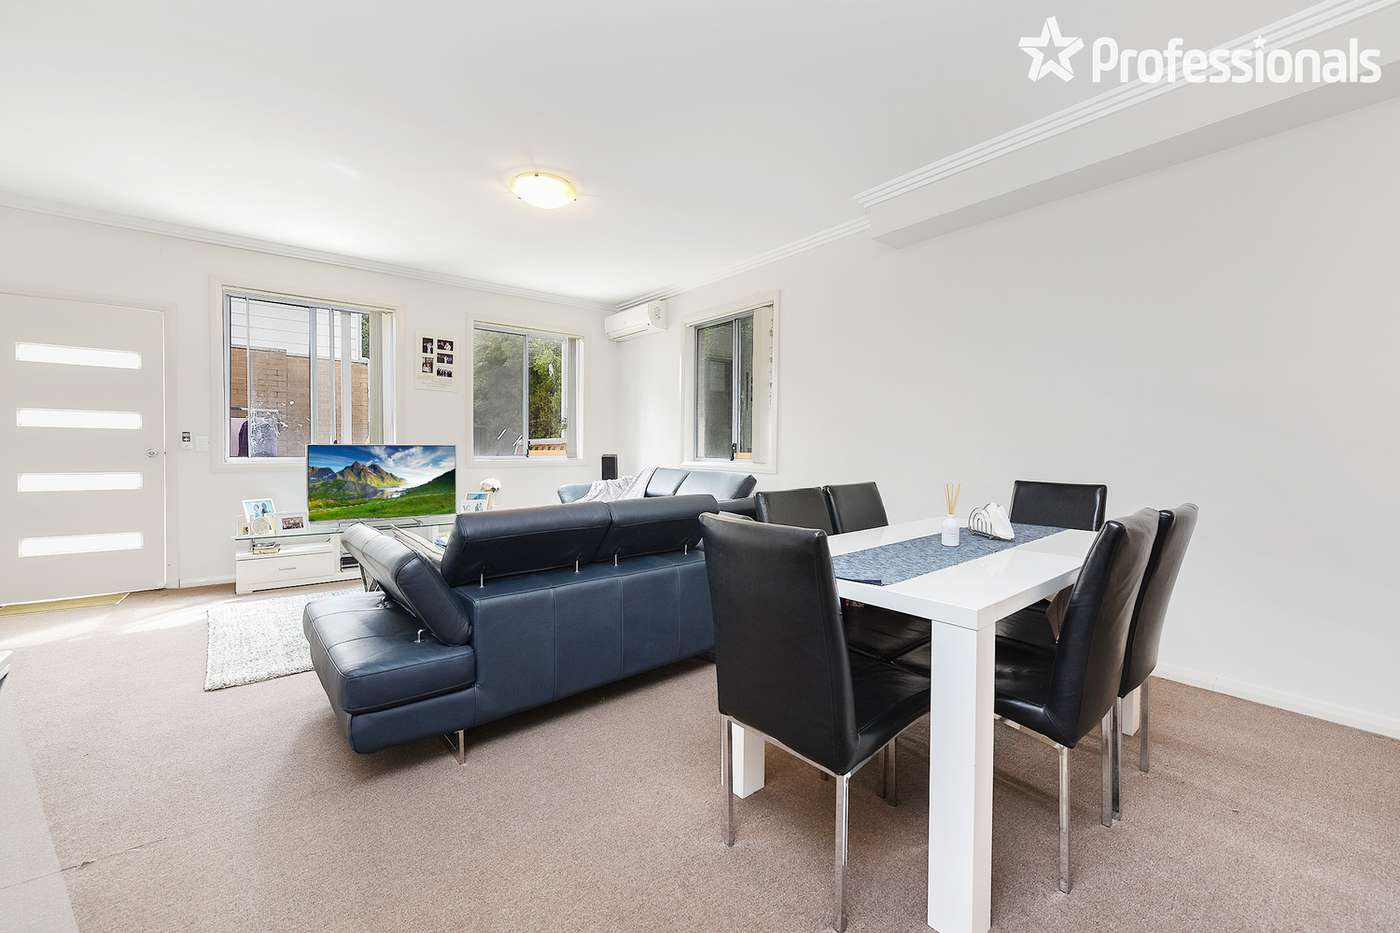 Main view of Homely townhouse listing, 29/1-3 Putland Street, St Marys, NSW 2760